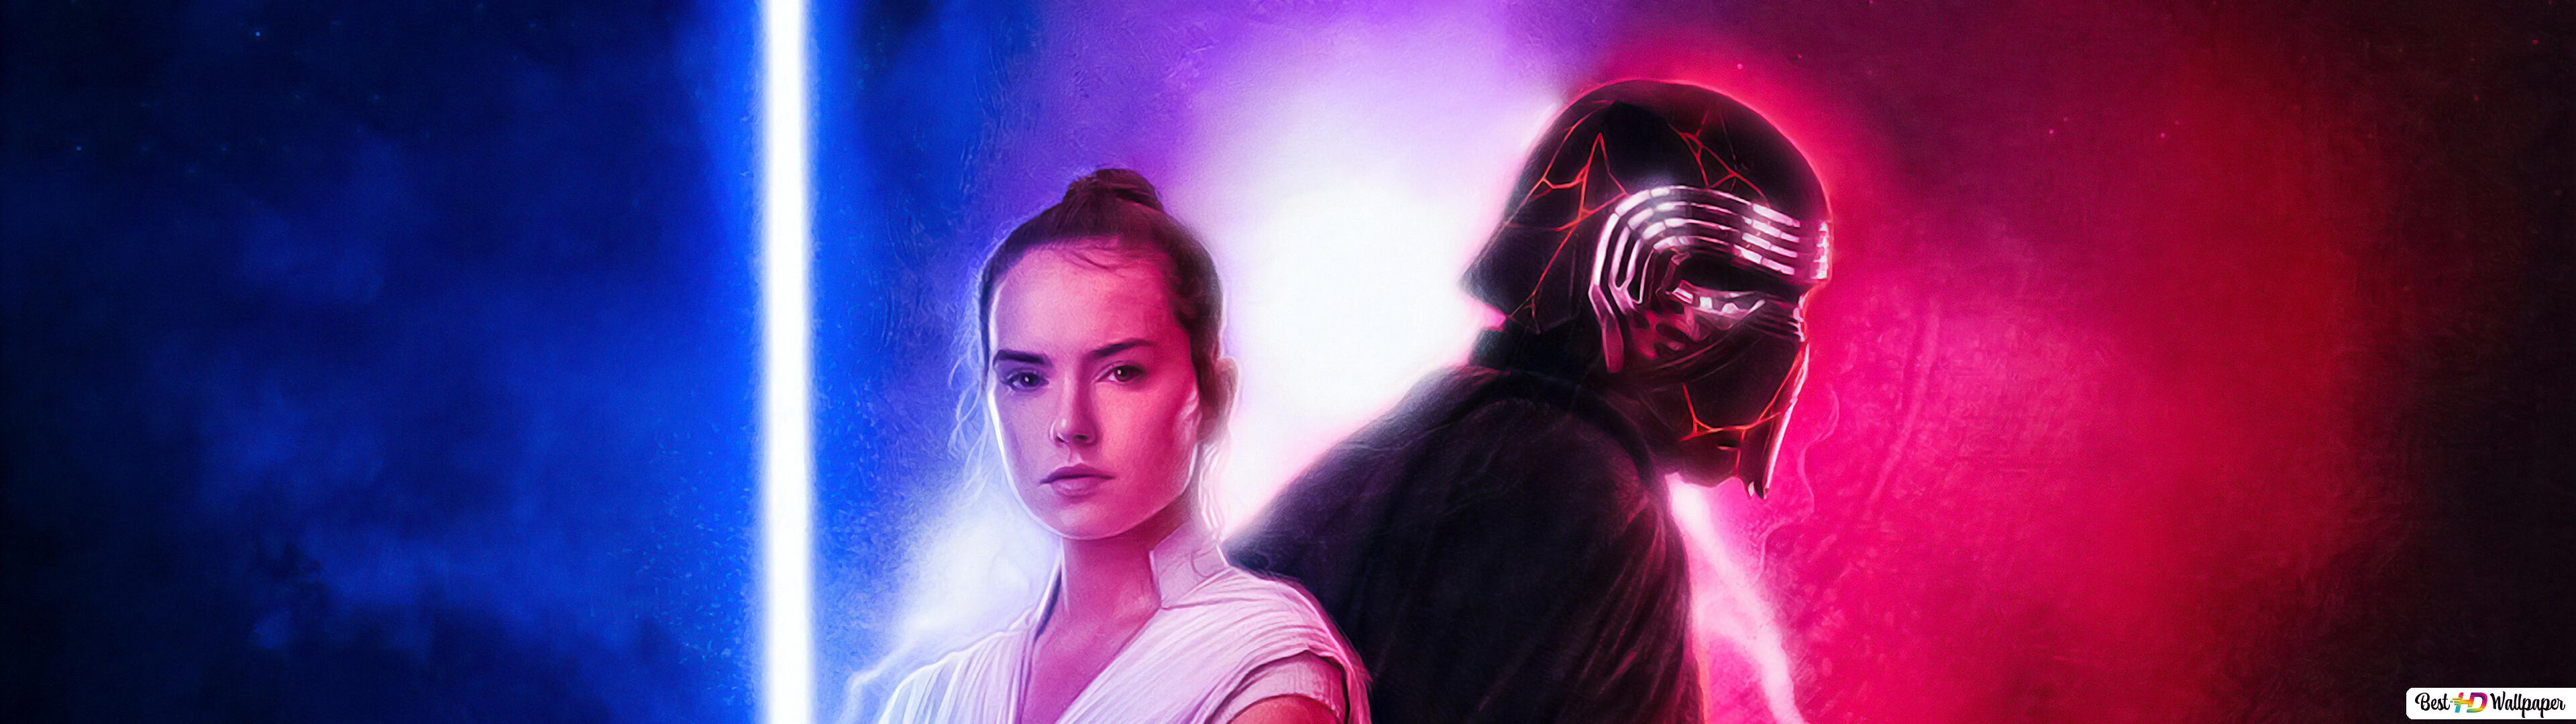 Star Wars 9 Rey And Kylo Hd Wallpaper Download